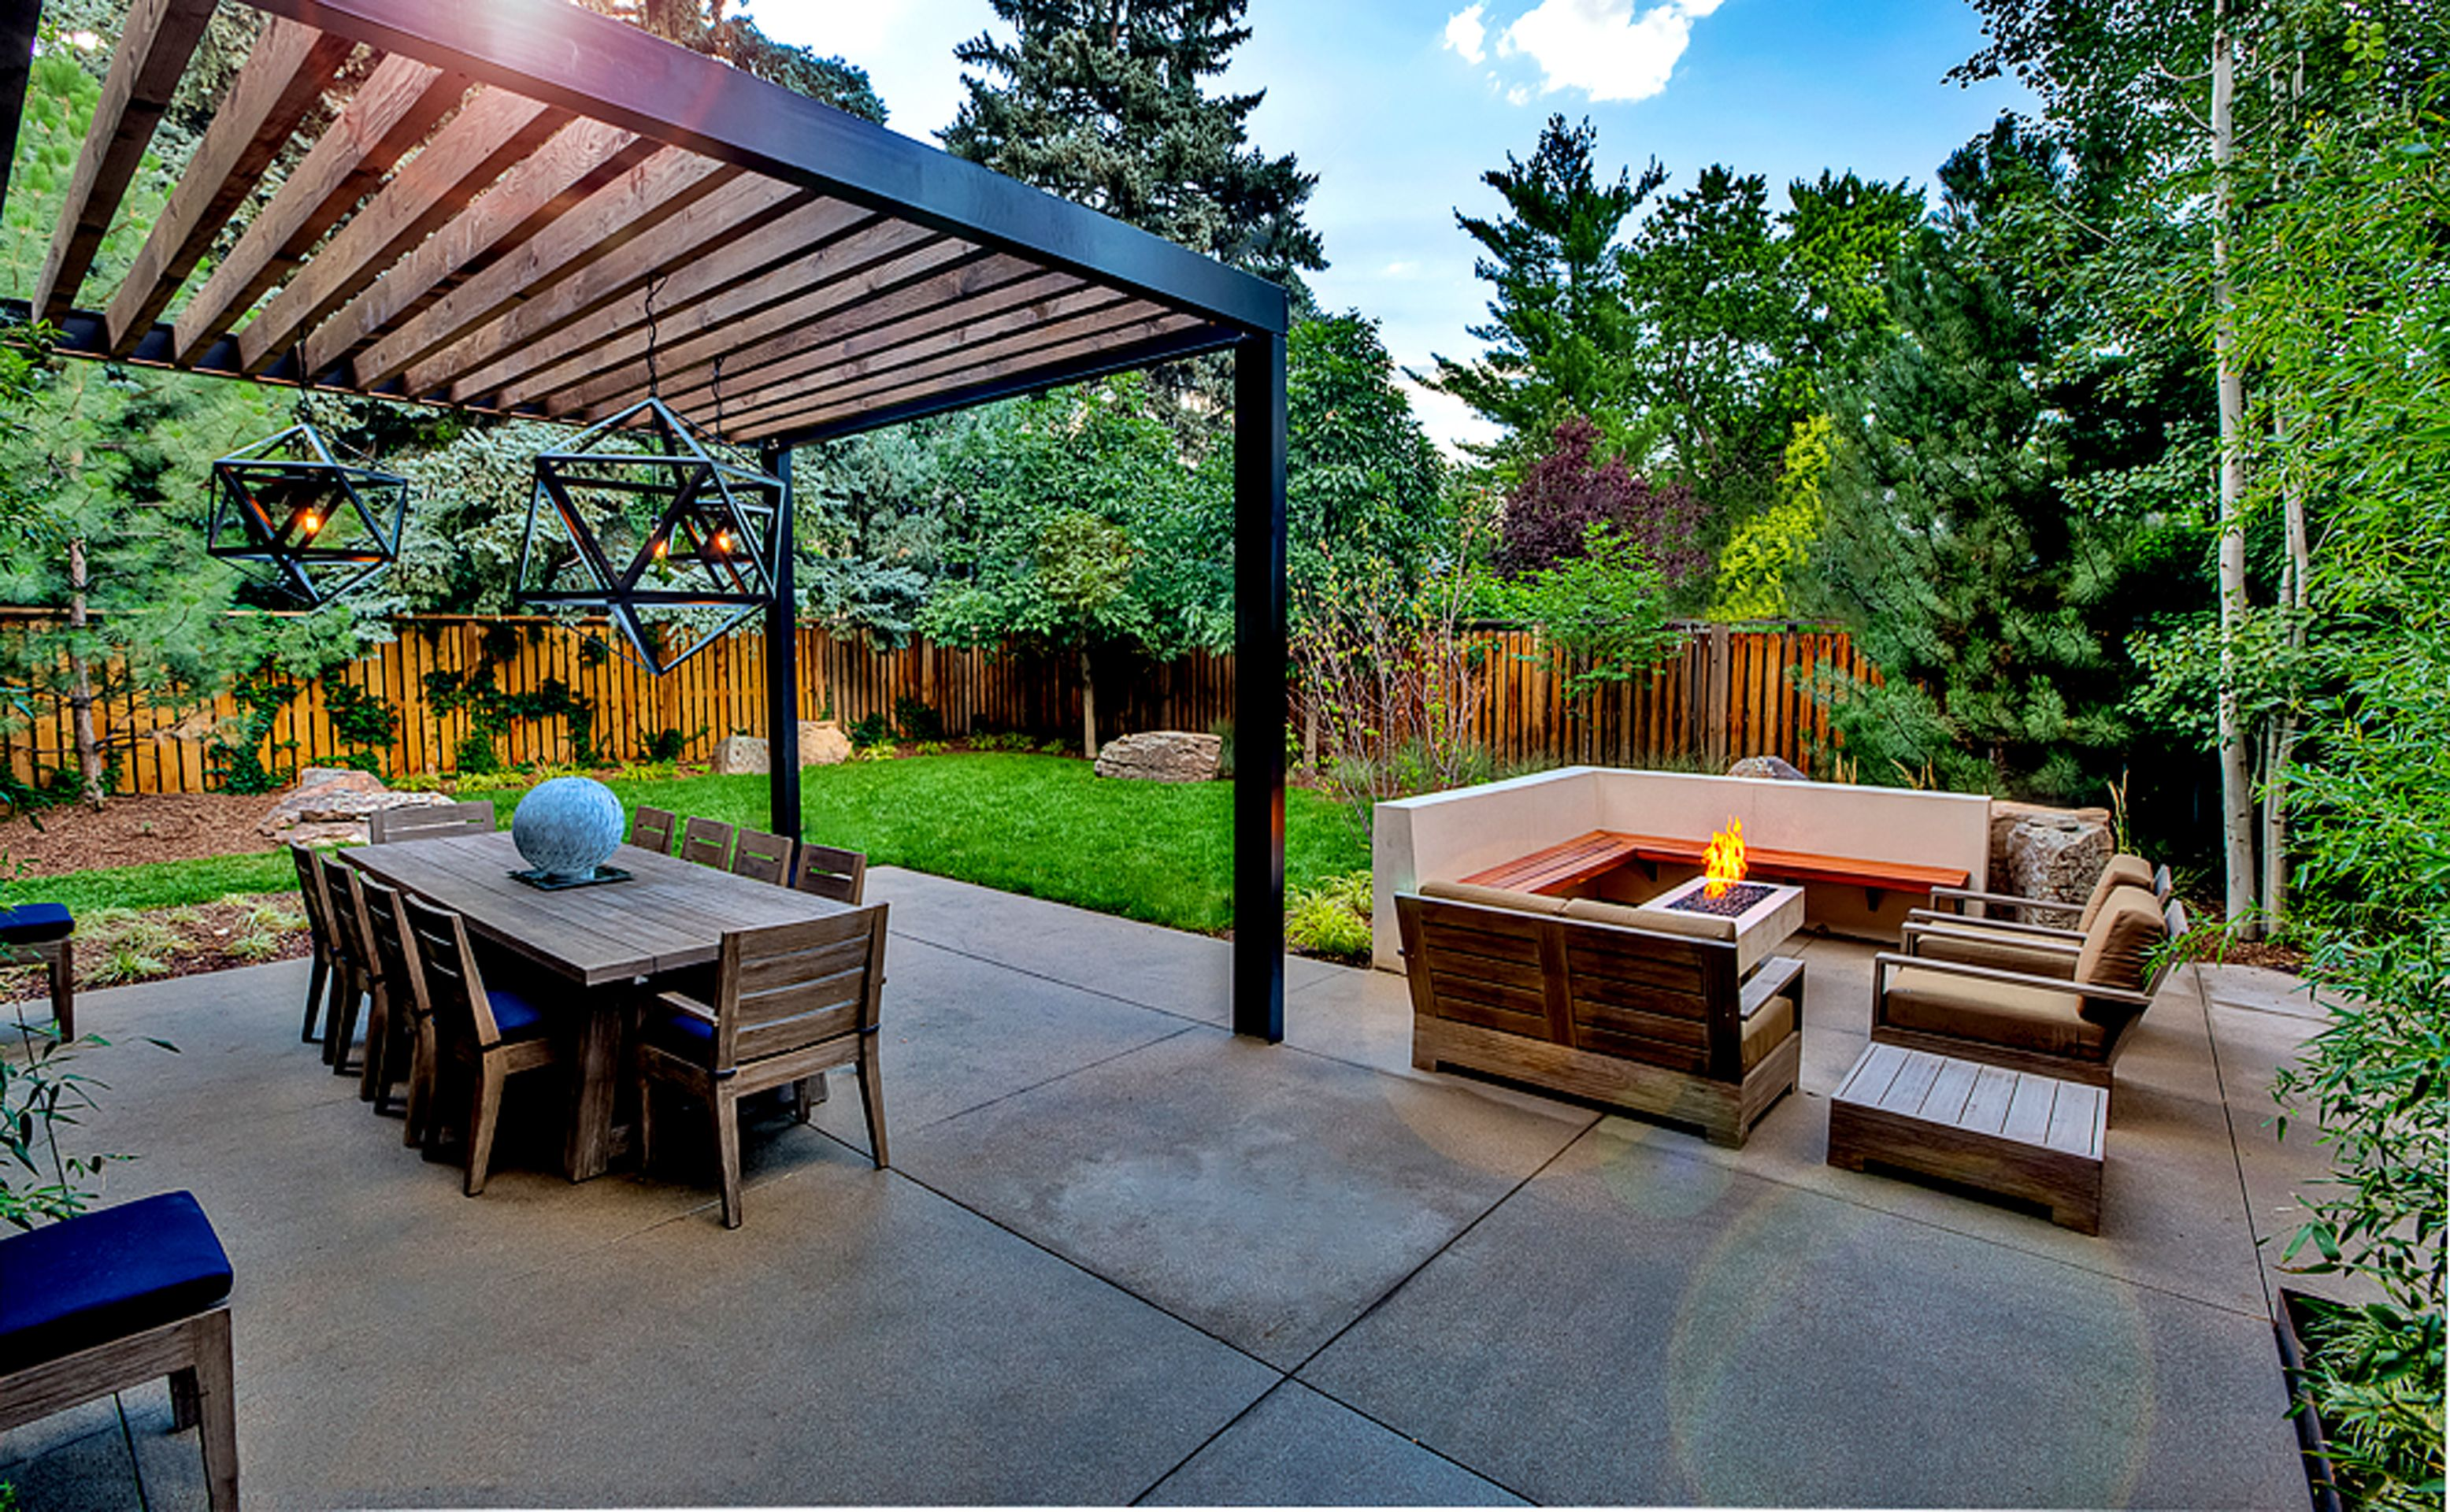 Pergola Build From Steel Beams By Mile High Landscaping